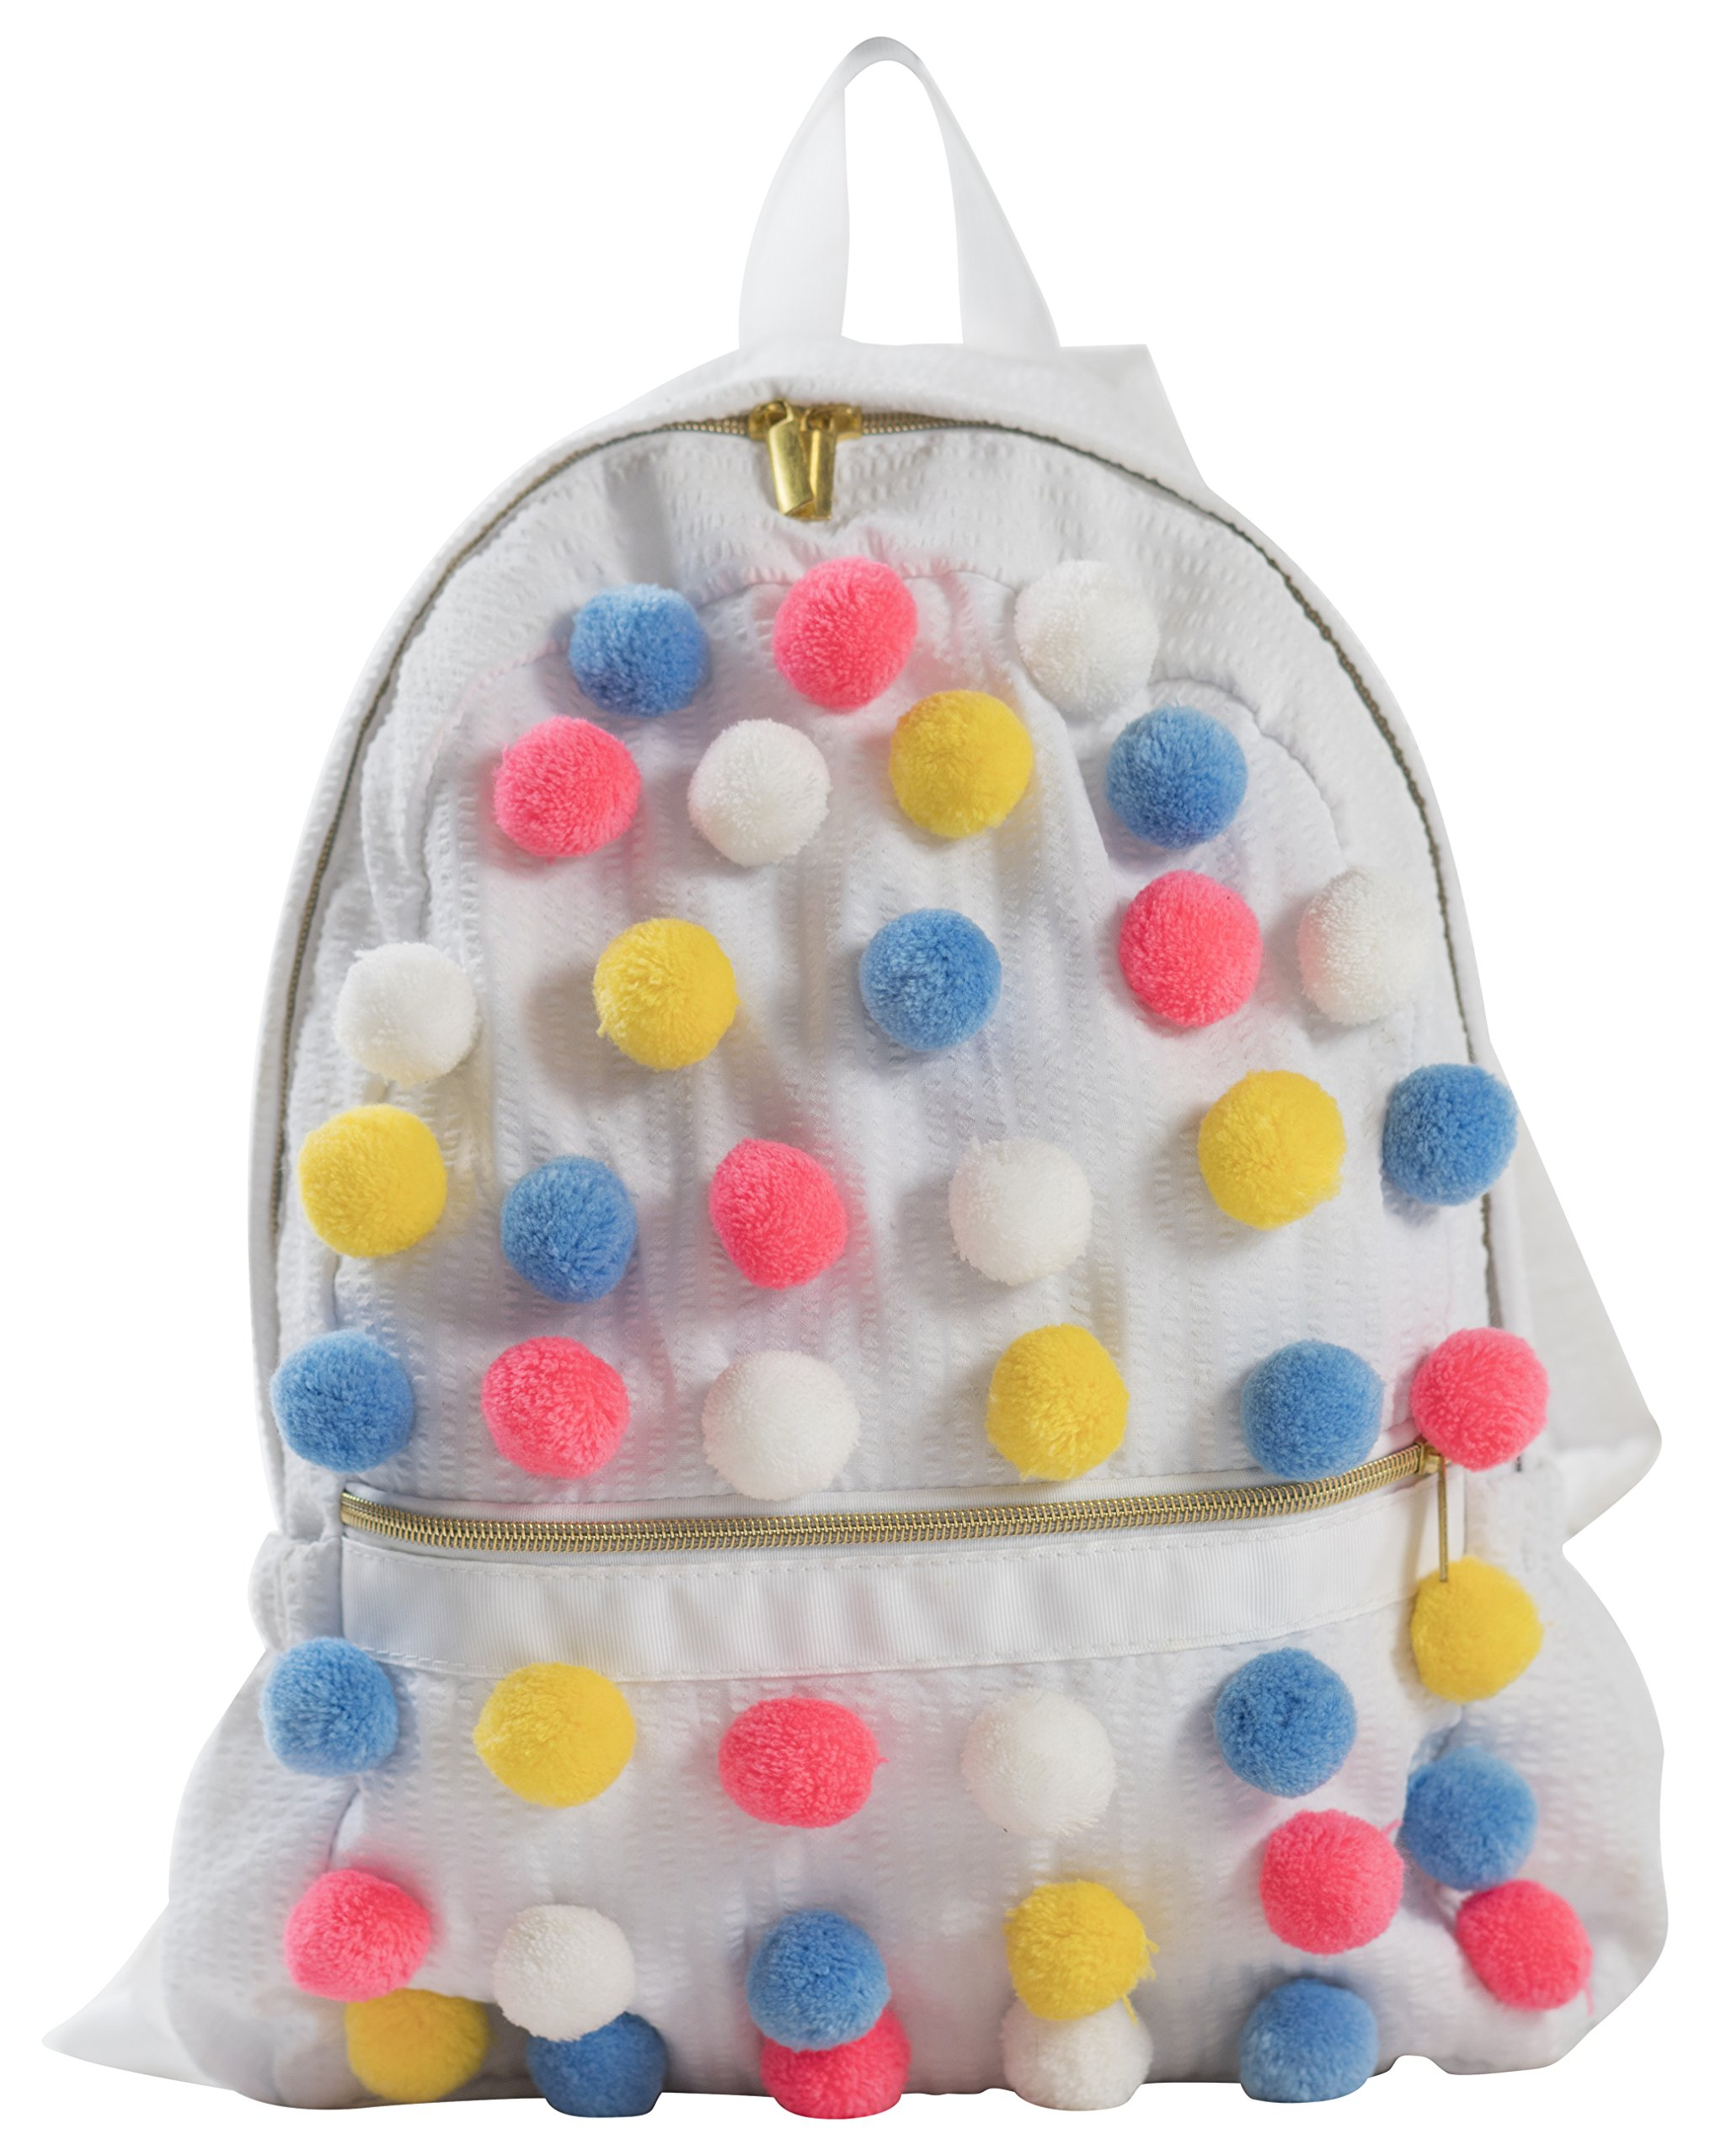 Palm Beach Crew Seersucker Backpack or Mini Seaside Sweets Collection, White Bright Poms